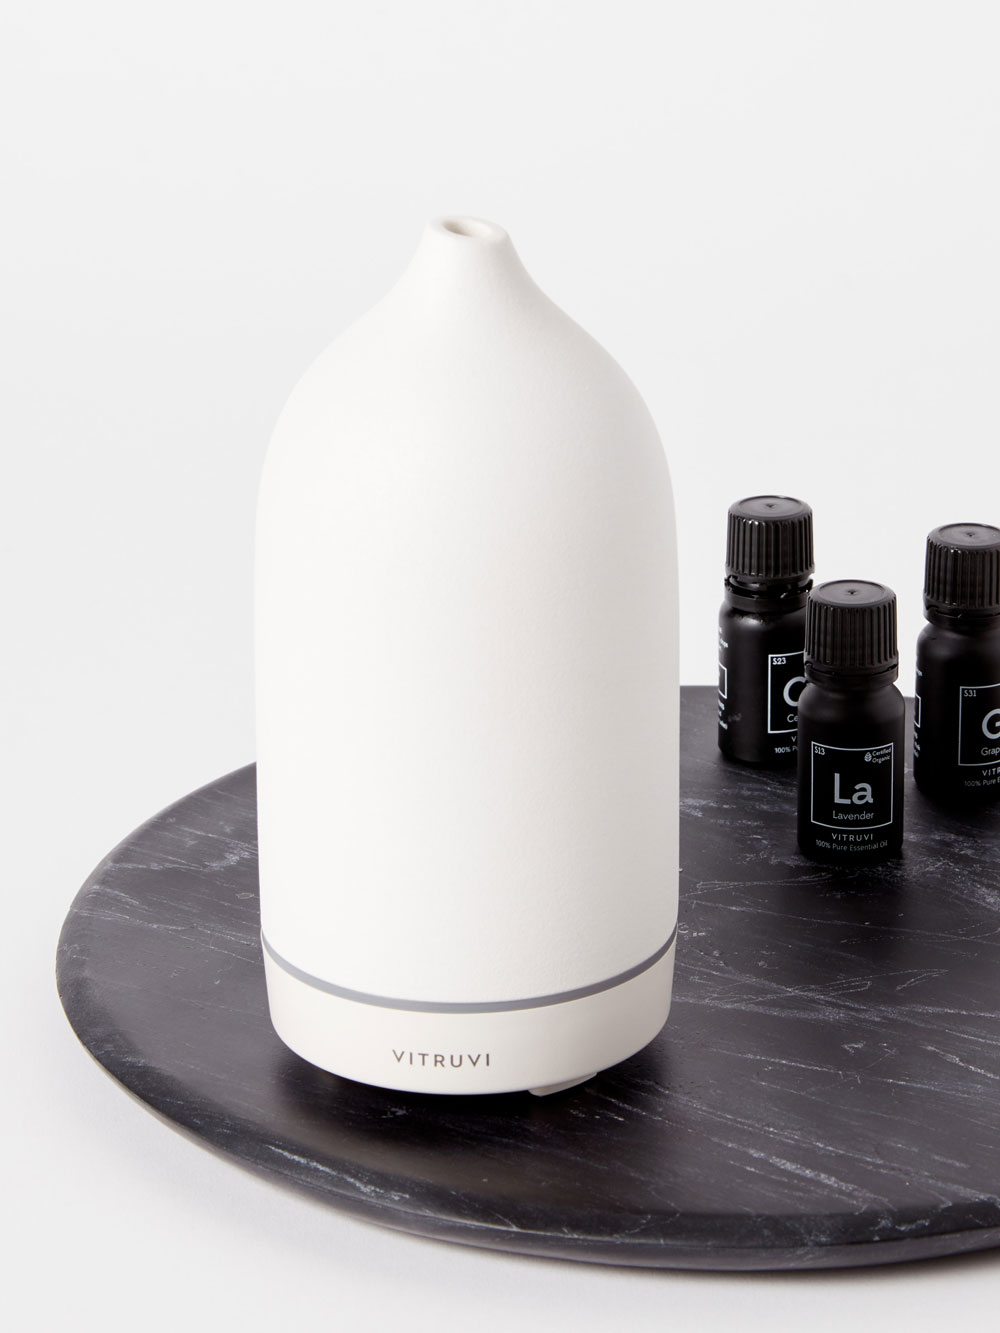 Diffuser-sleep-scent-essentialoil